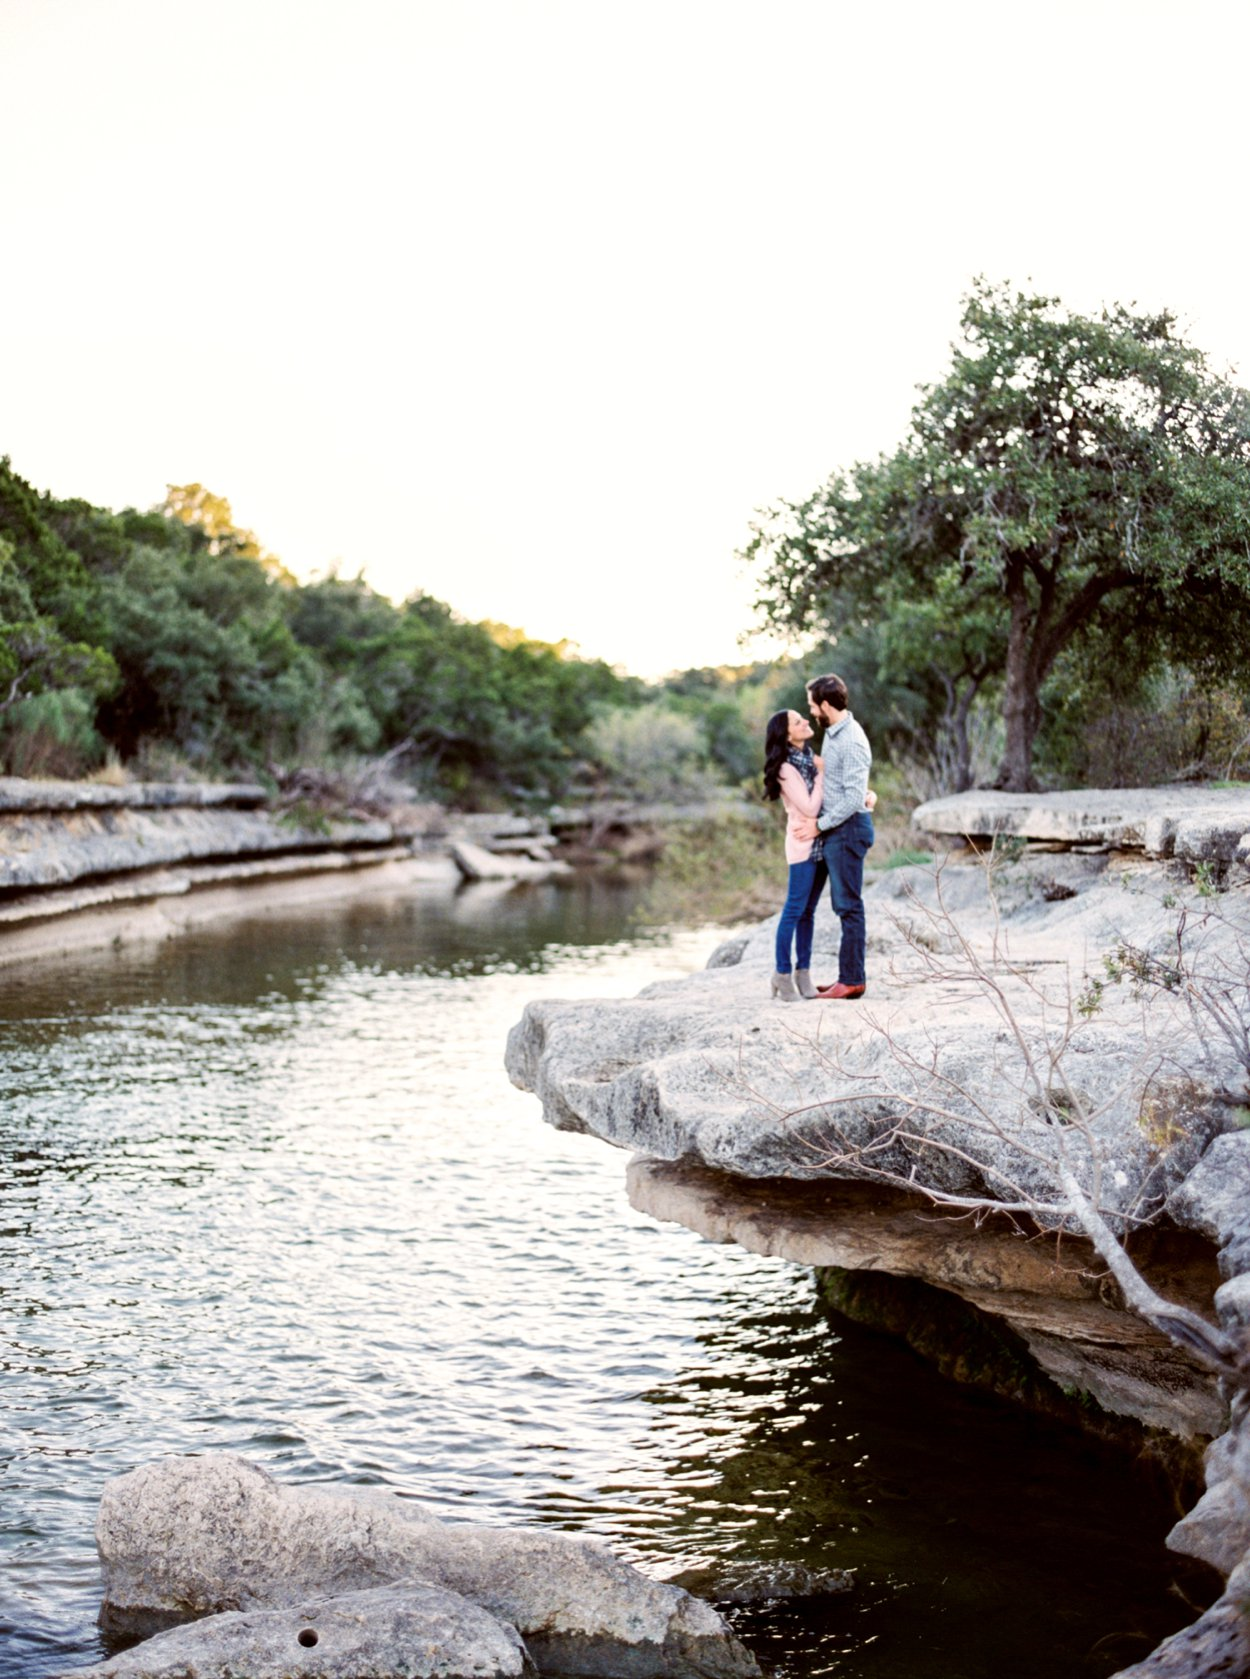 87124-austinweddingphotographeraustinweddingphotographer.jpg